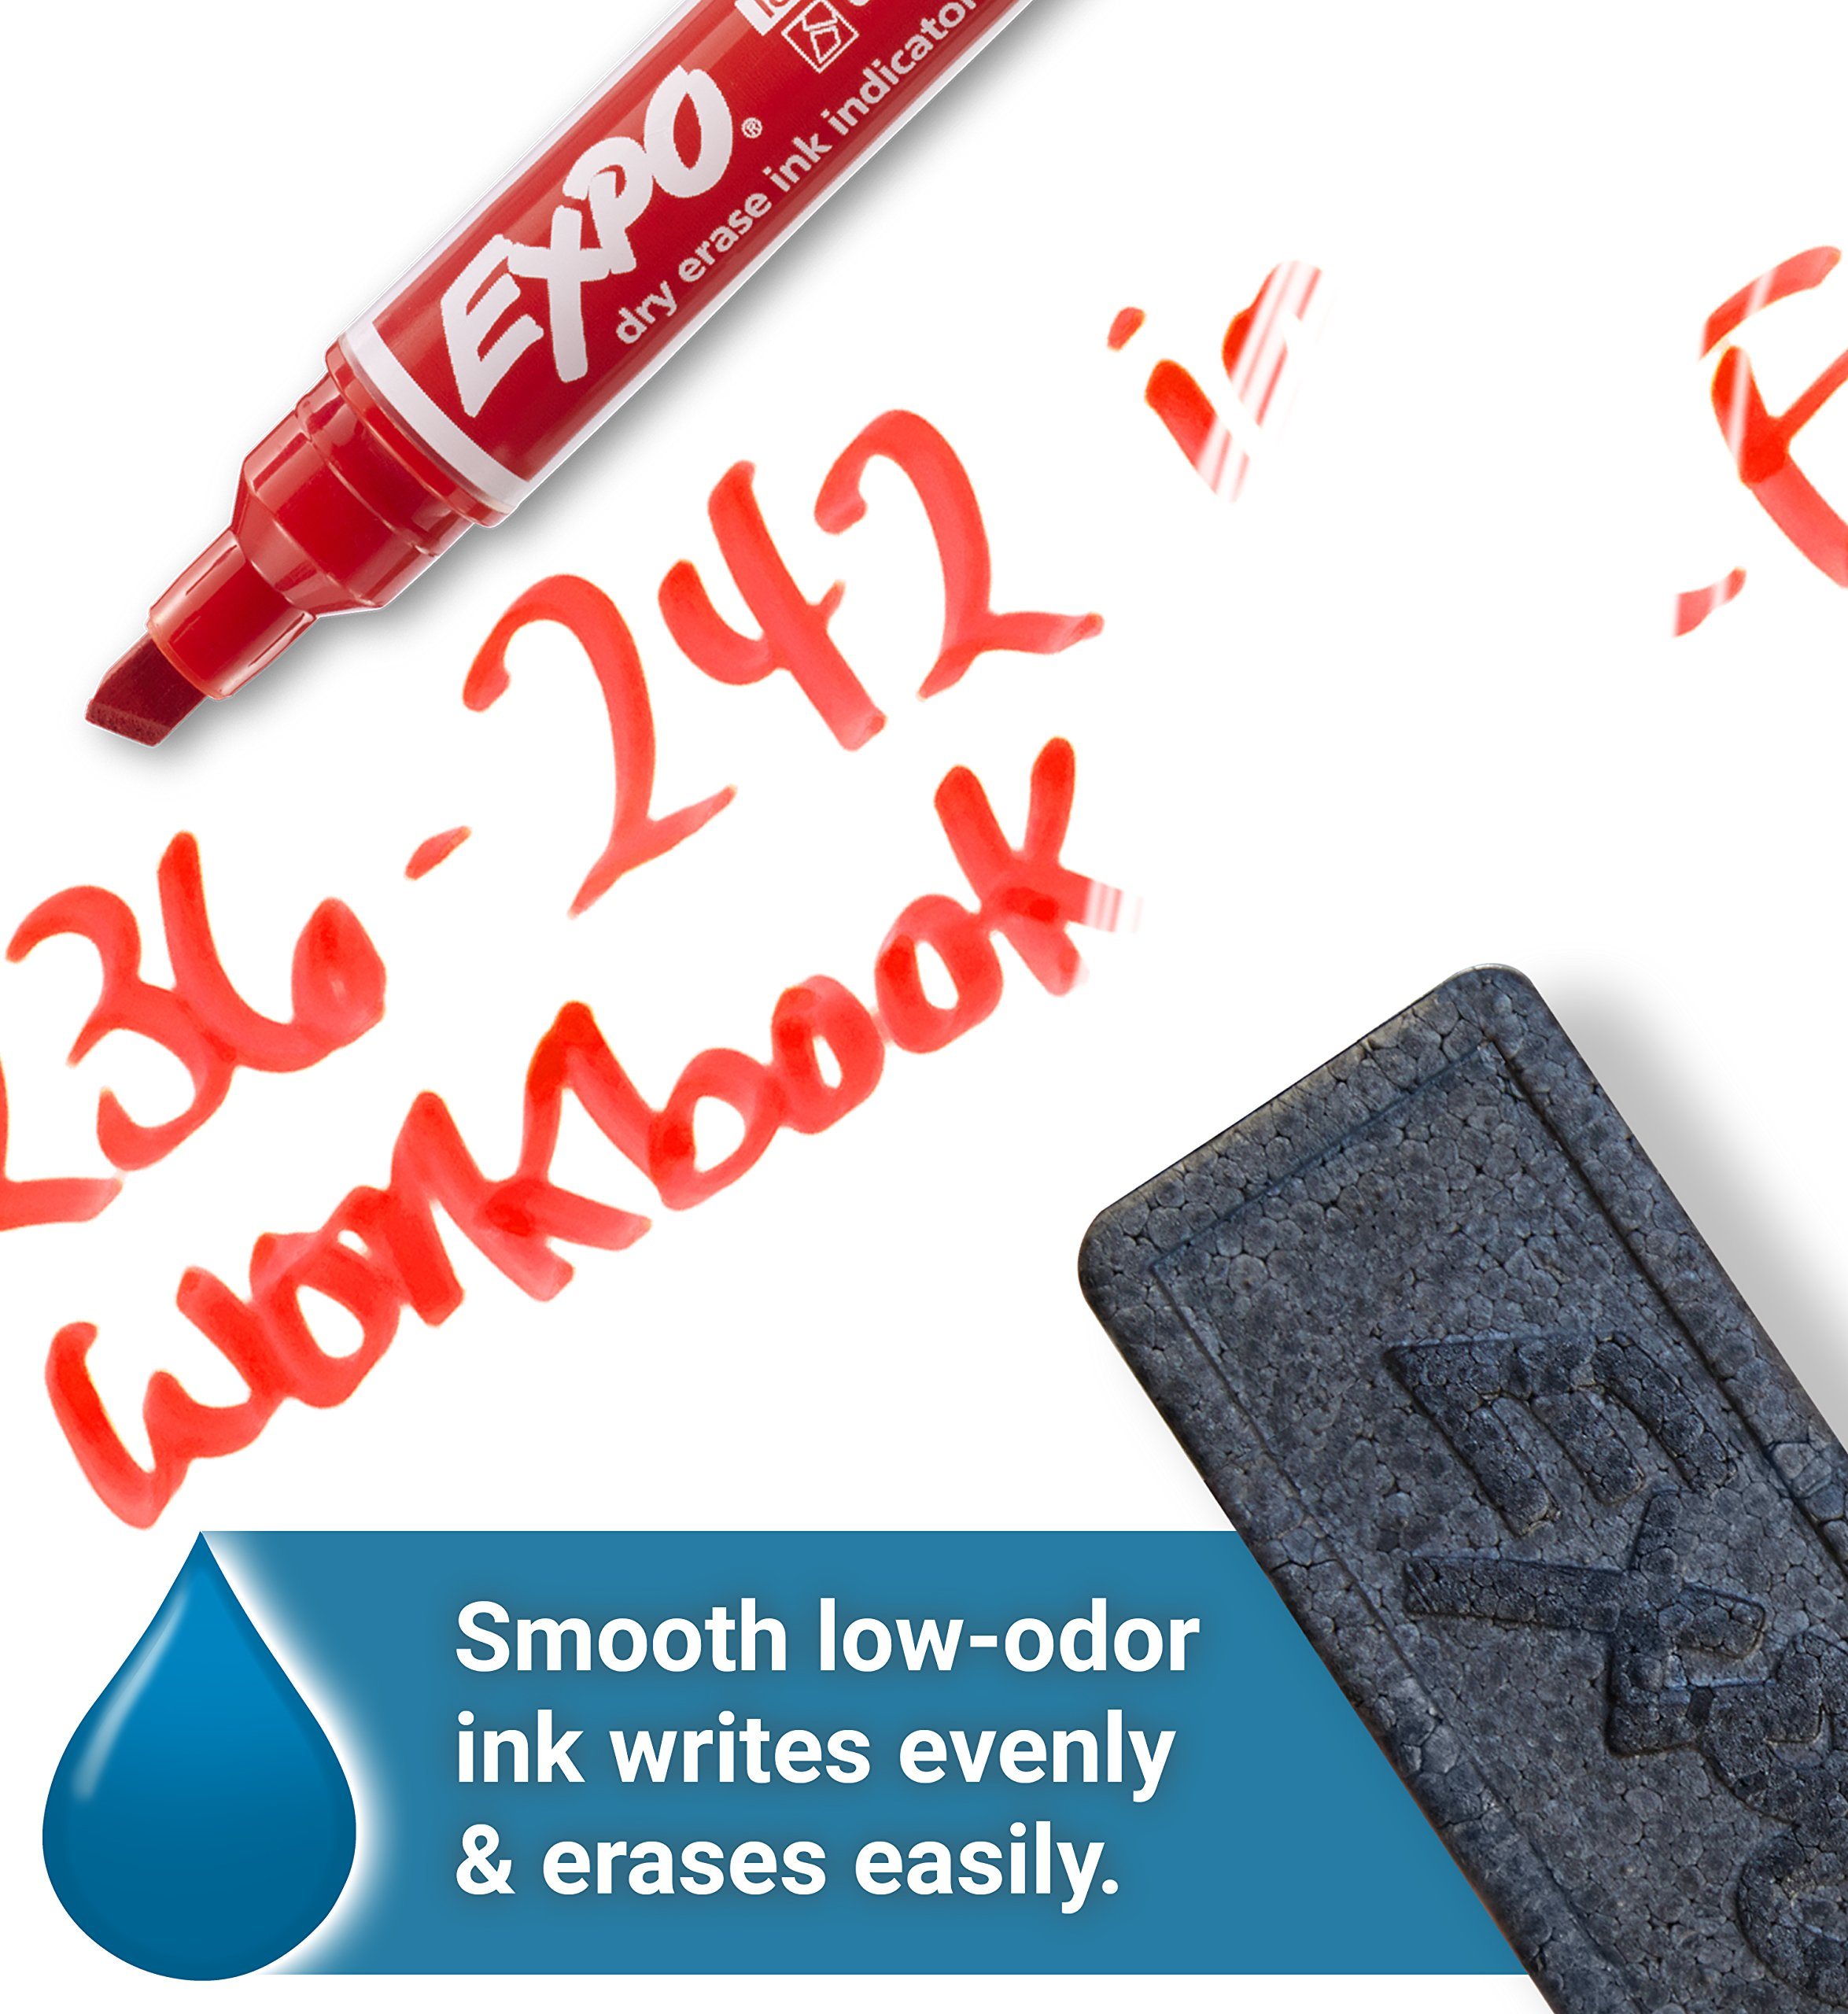 EXPO Dry Erase Markers with Ink Indicator, Chisel Tip, Assorted Colors, Box of 24 by Expo (Image #6)